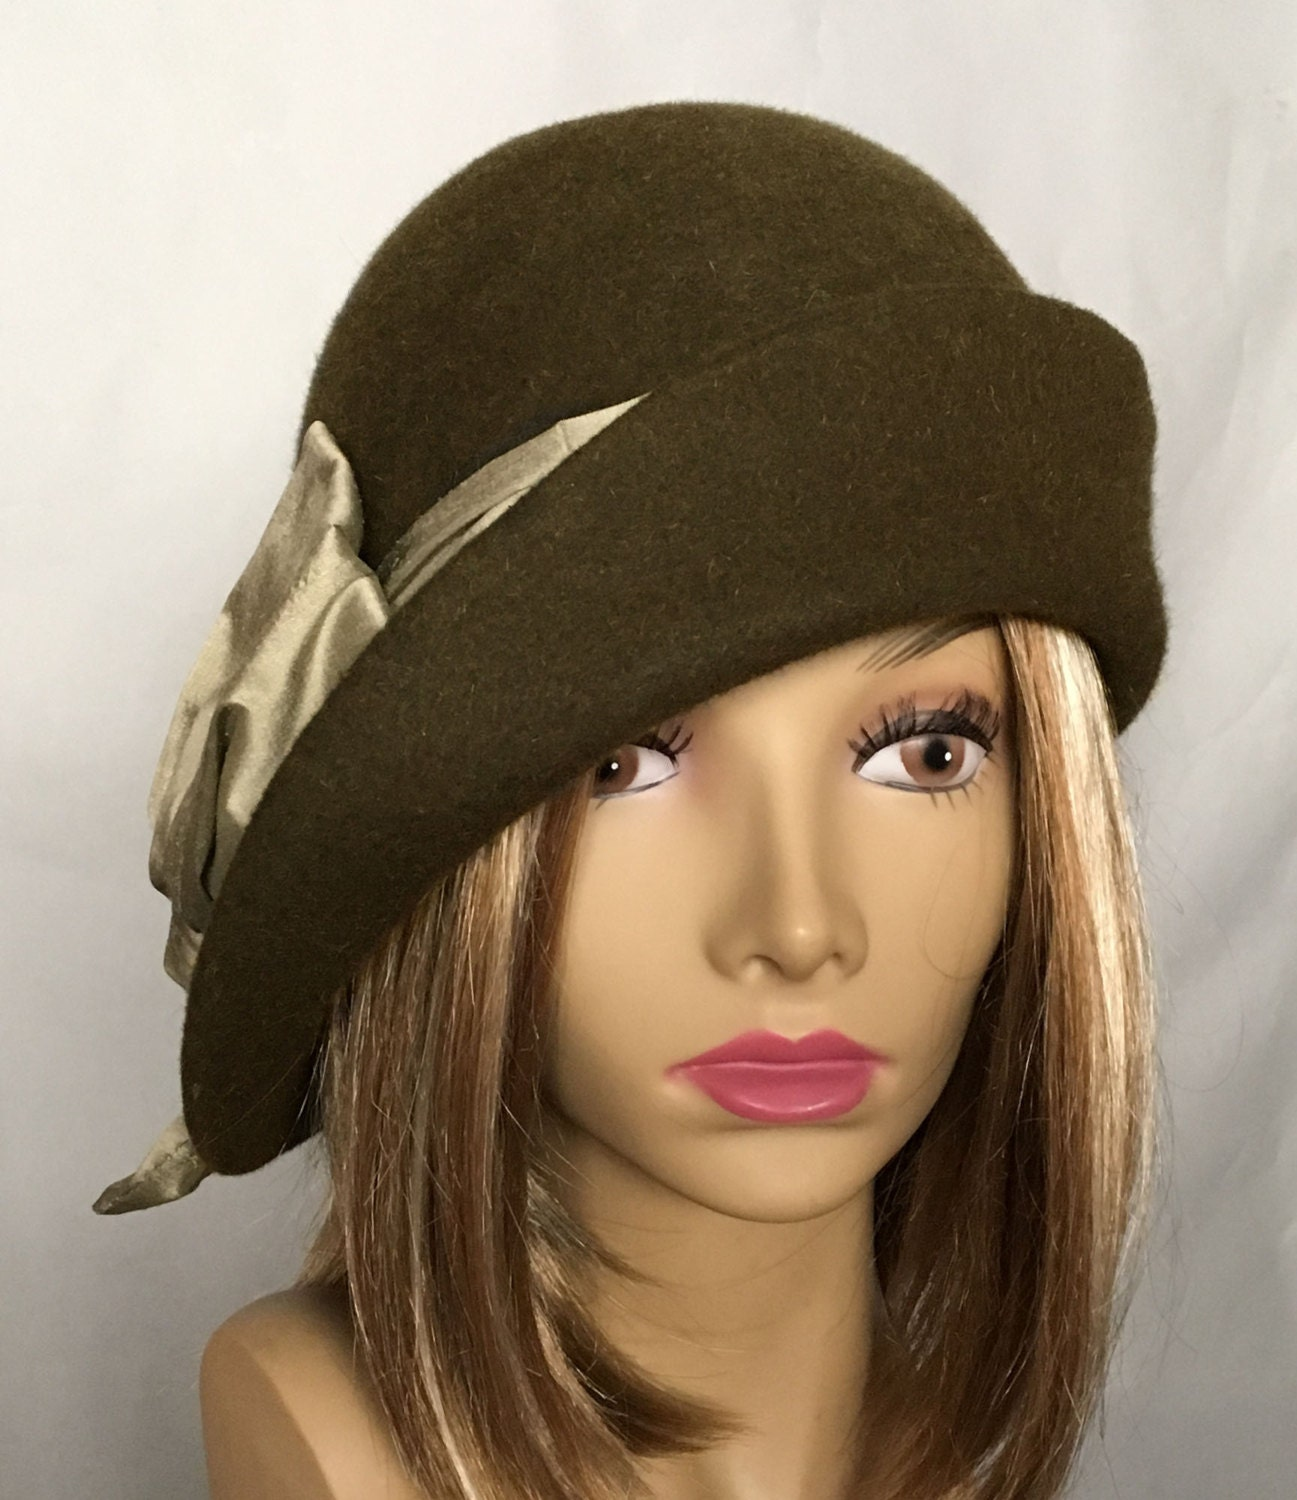 Ashley Fur: Ashley Fur Felt Cloche Side Drape Millinery Hat With Silk